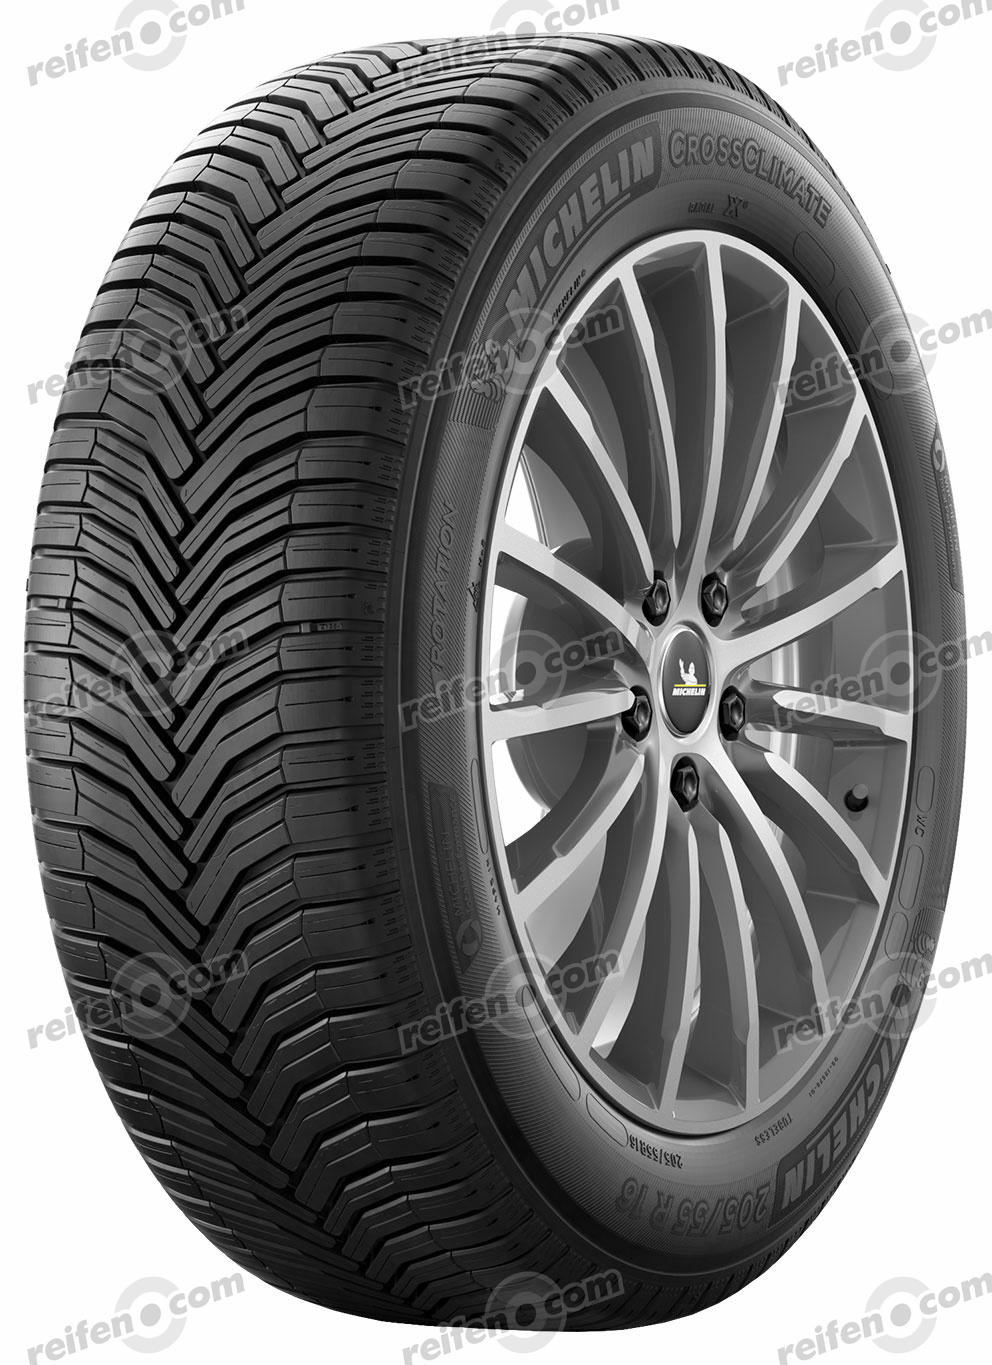 195/60 R15 92V Cross Climate+ XL  Cross Climate+ XL